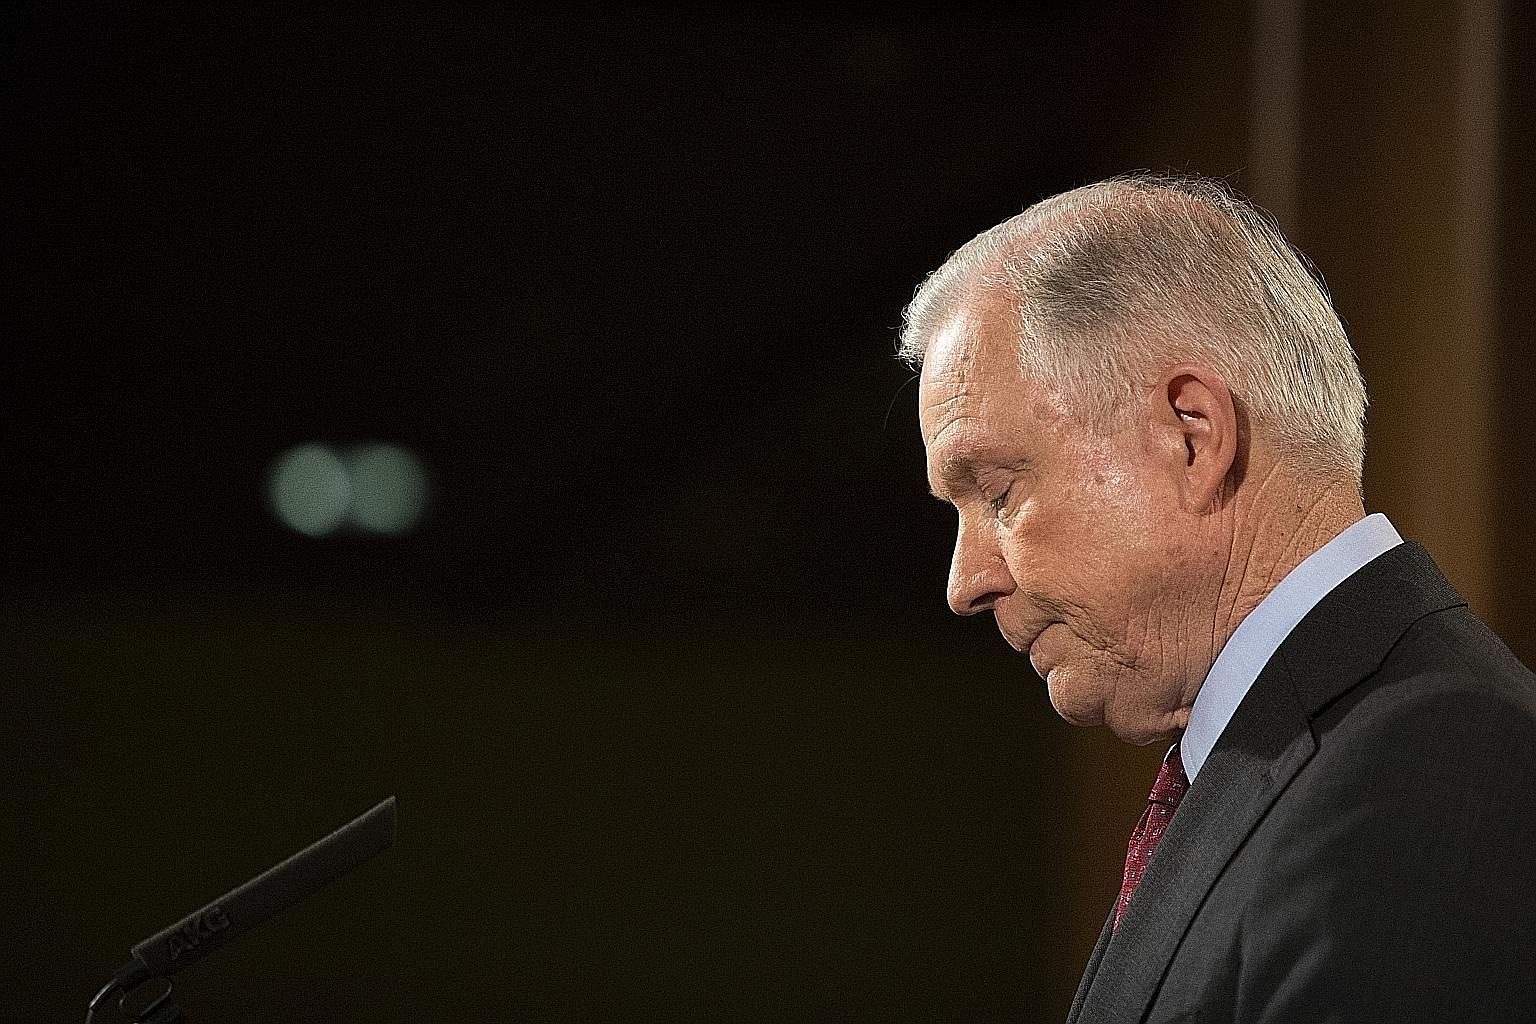 US Attorney-General Jeff Sessions, who has been openly criticised by Mr Trump, has said he has no plans to resign.